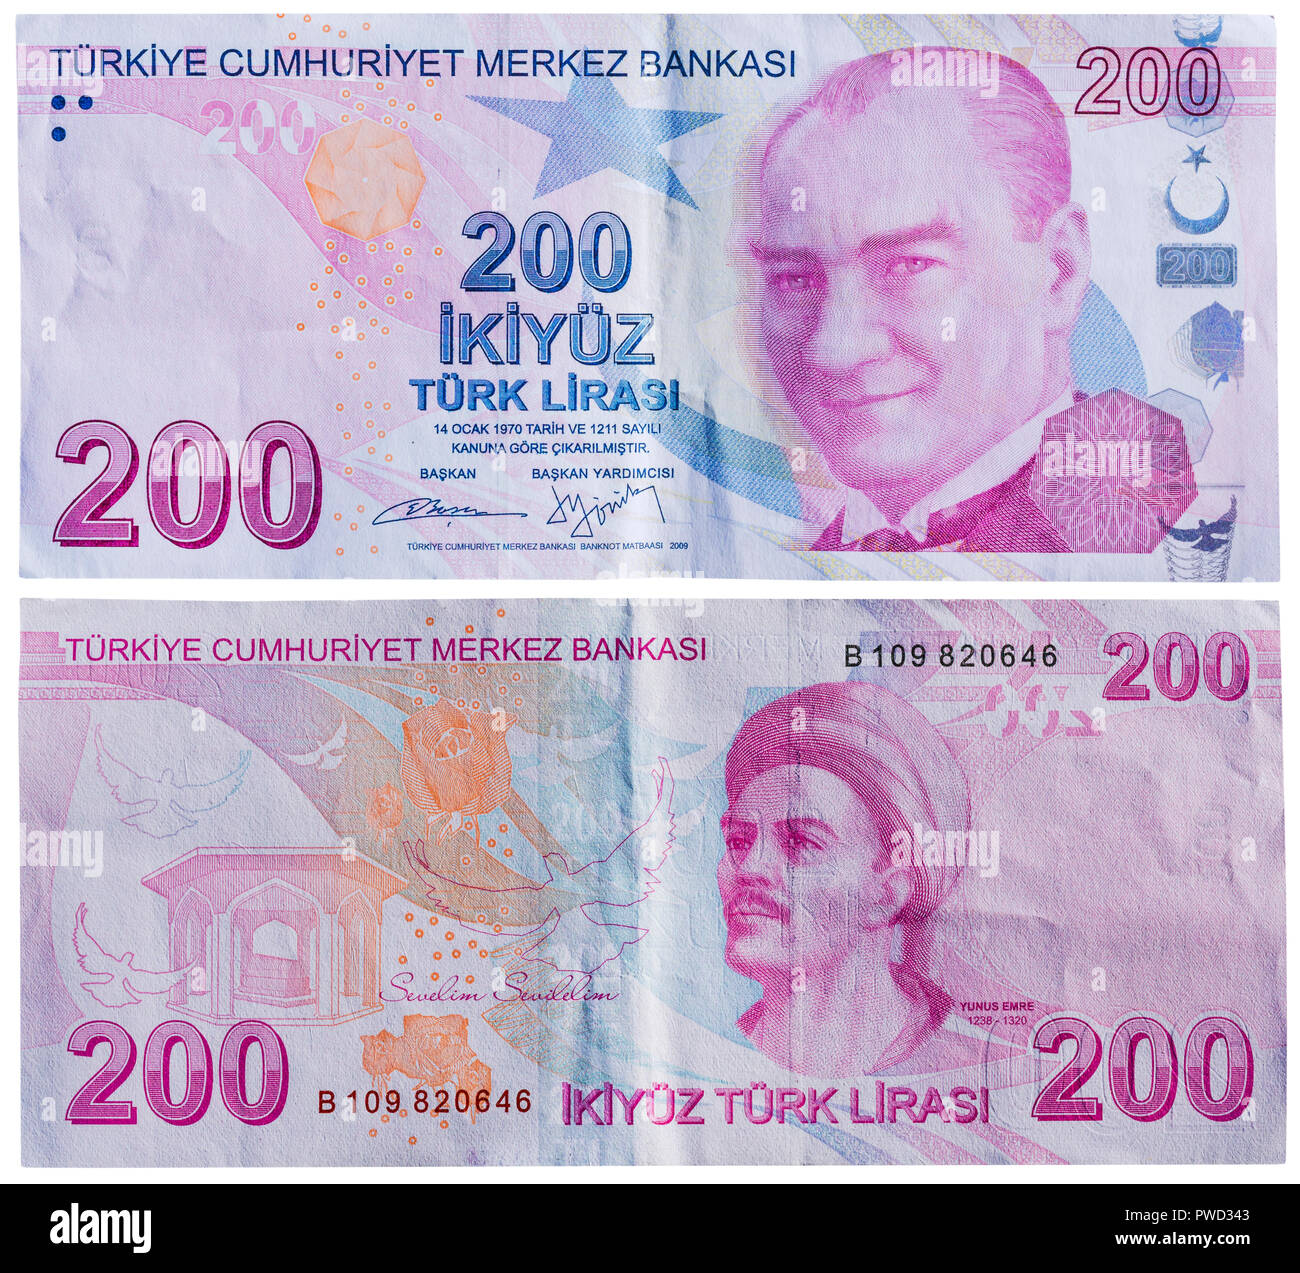 200 lira banknote, Mustafa Kemal Ataturk, Yunus Emre, Turkey, 2009 Stock Photo